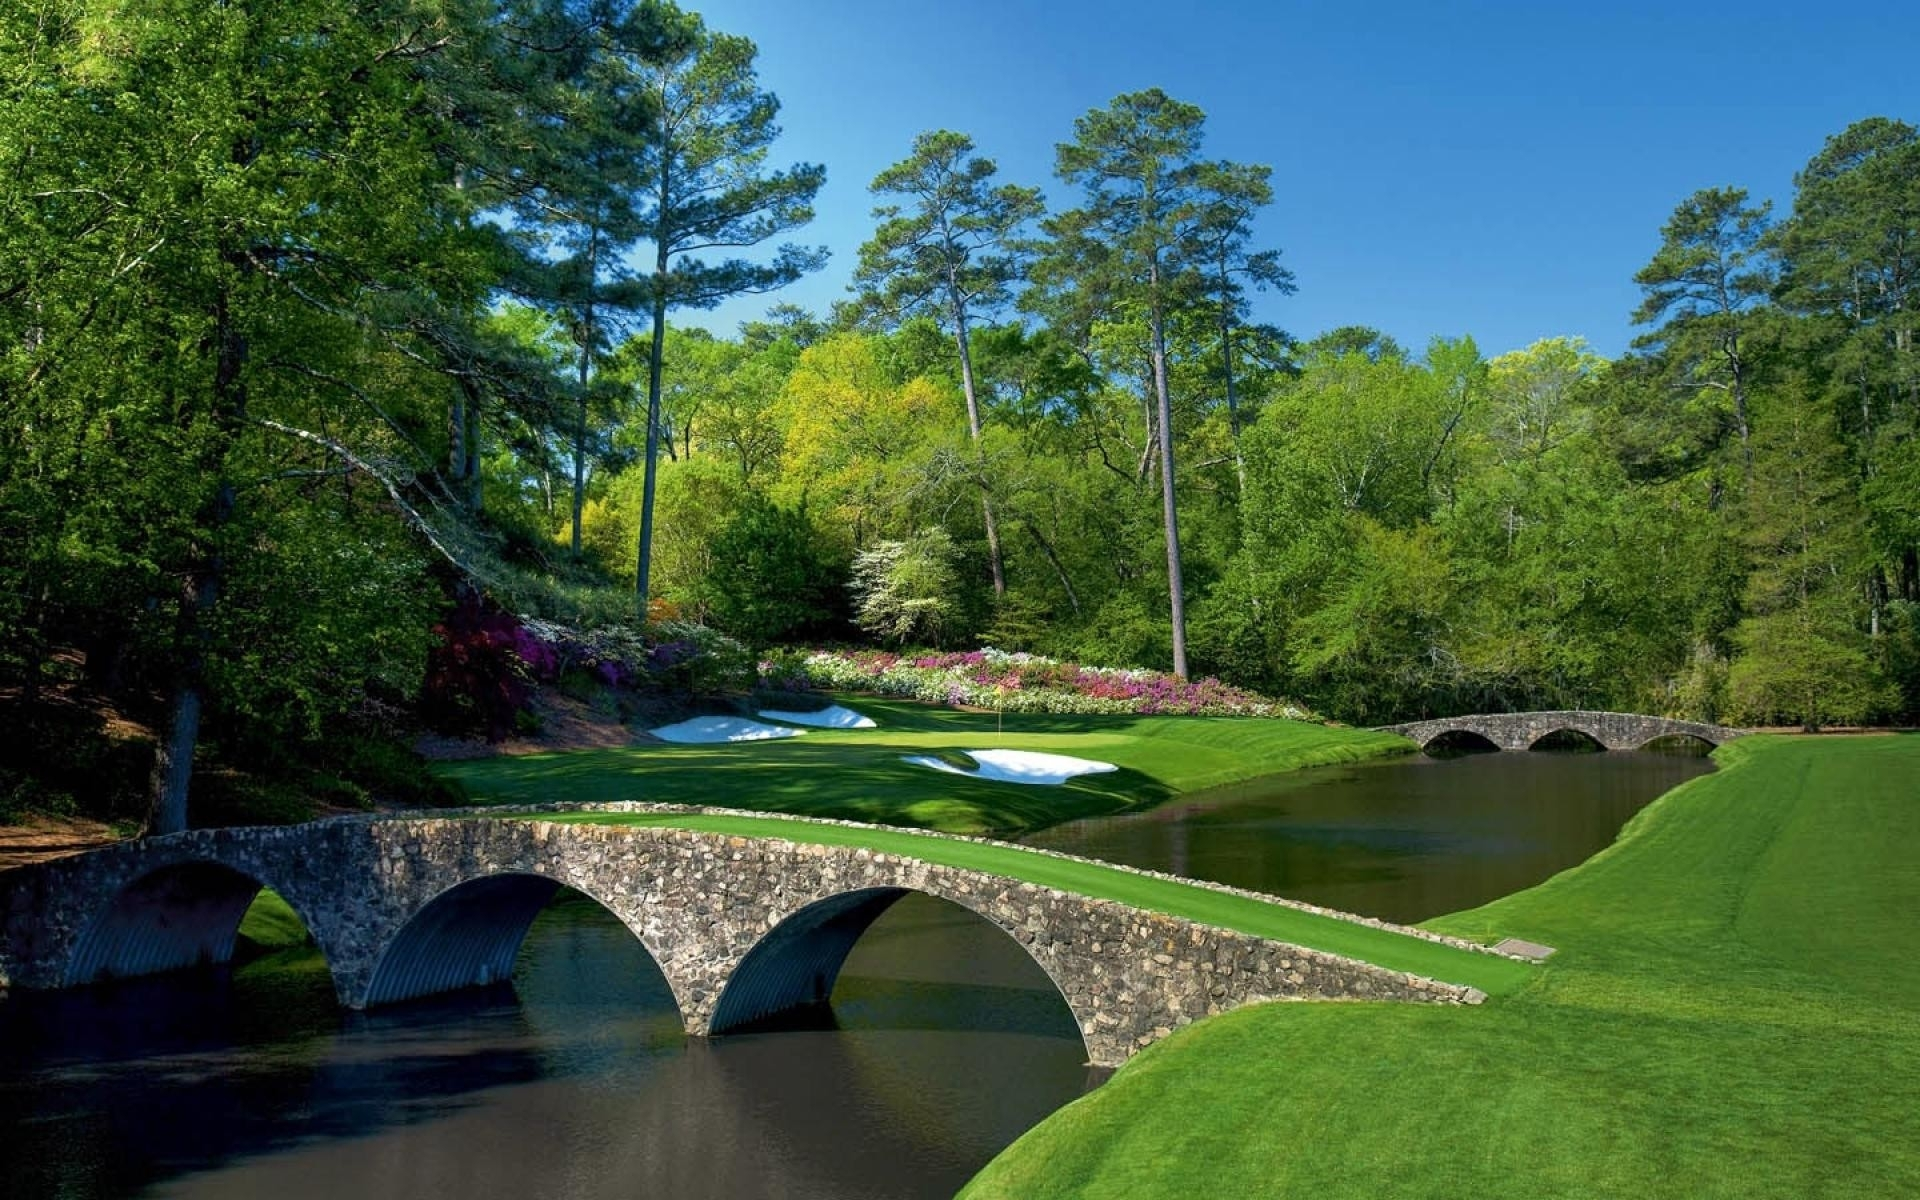 augusta national wallpaper hd (60+ images)